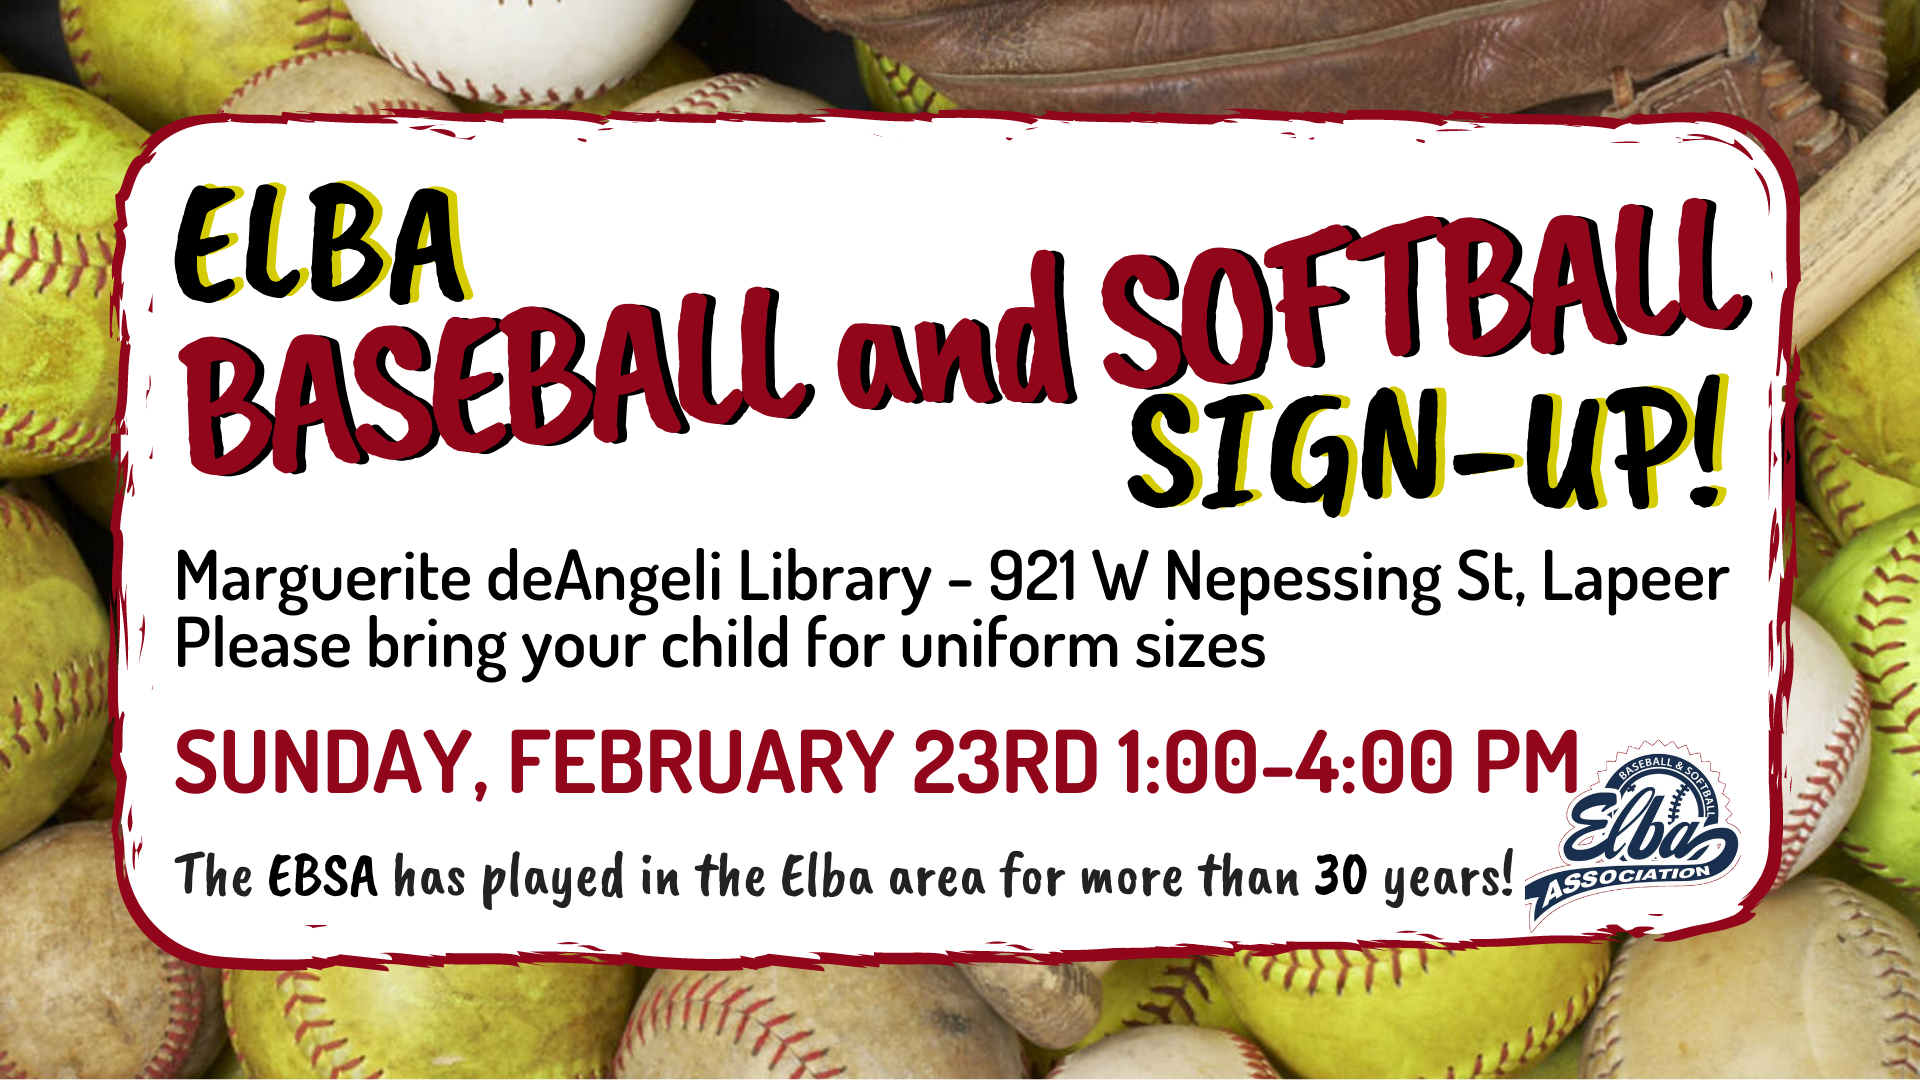 Elba Baseball and Softball sign up